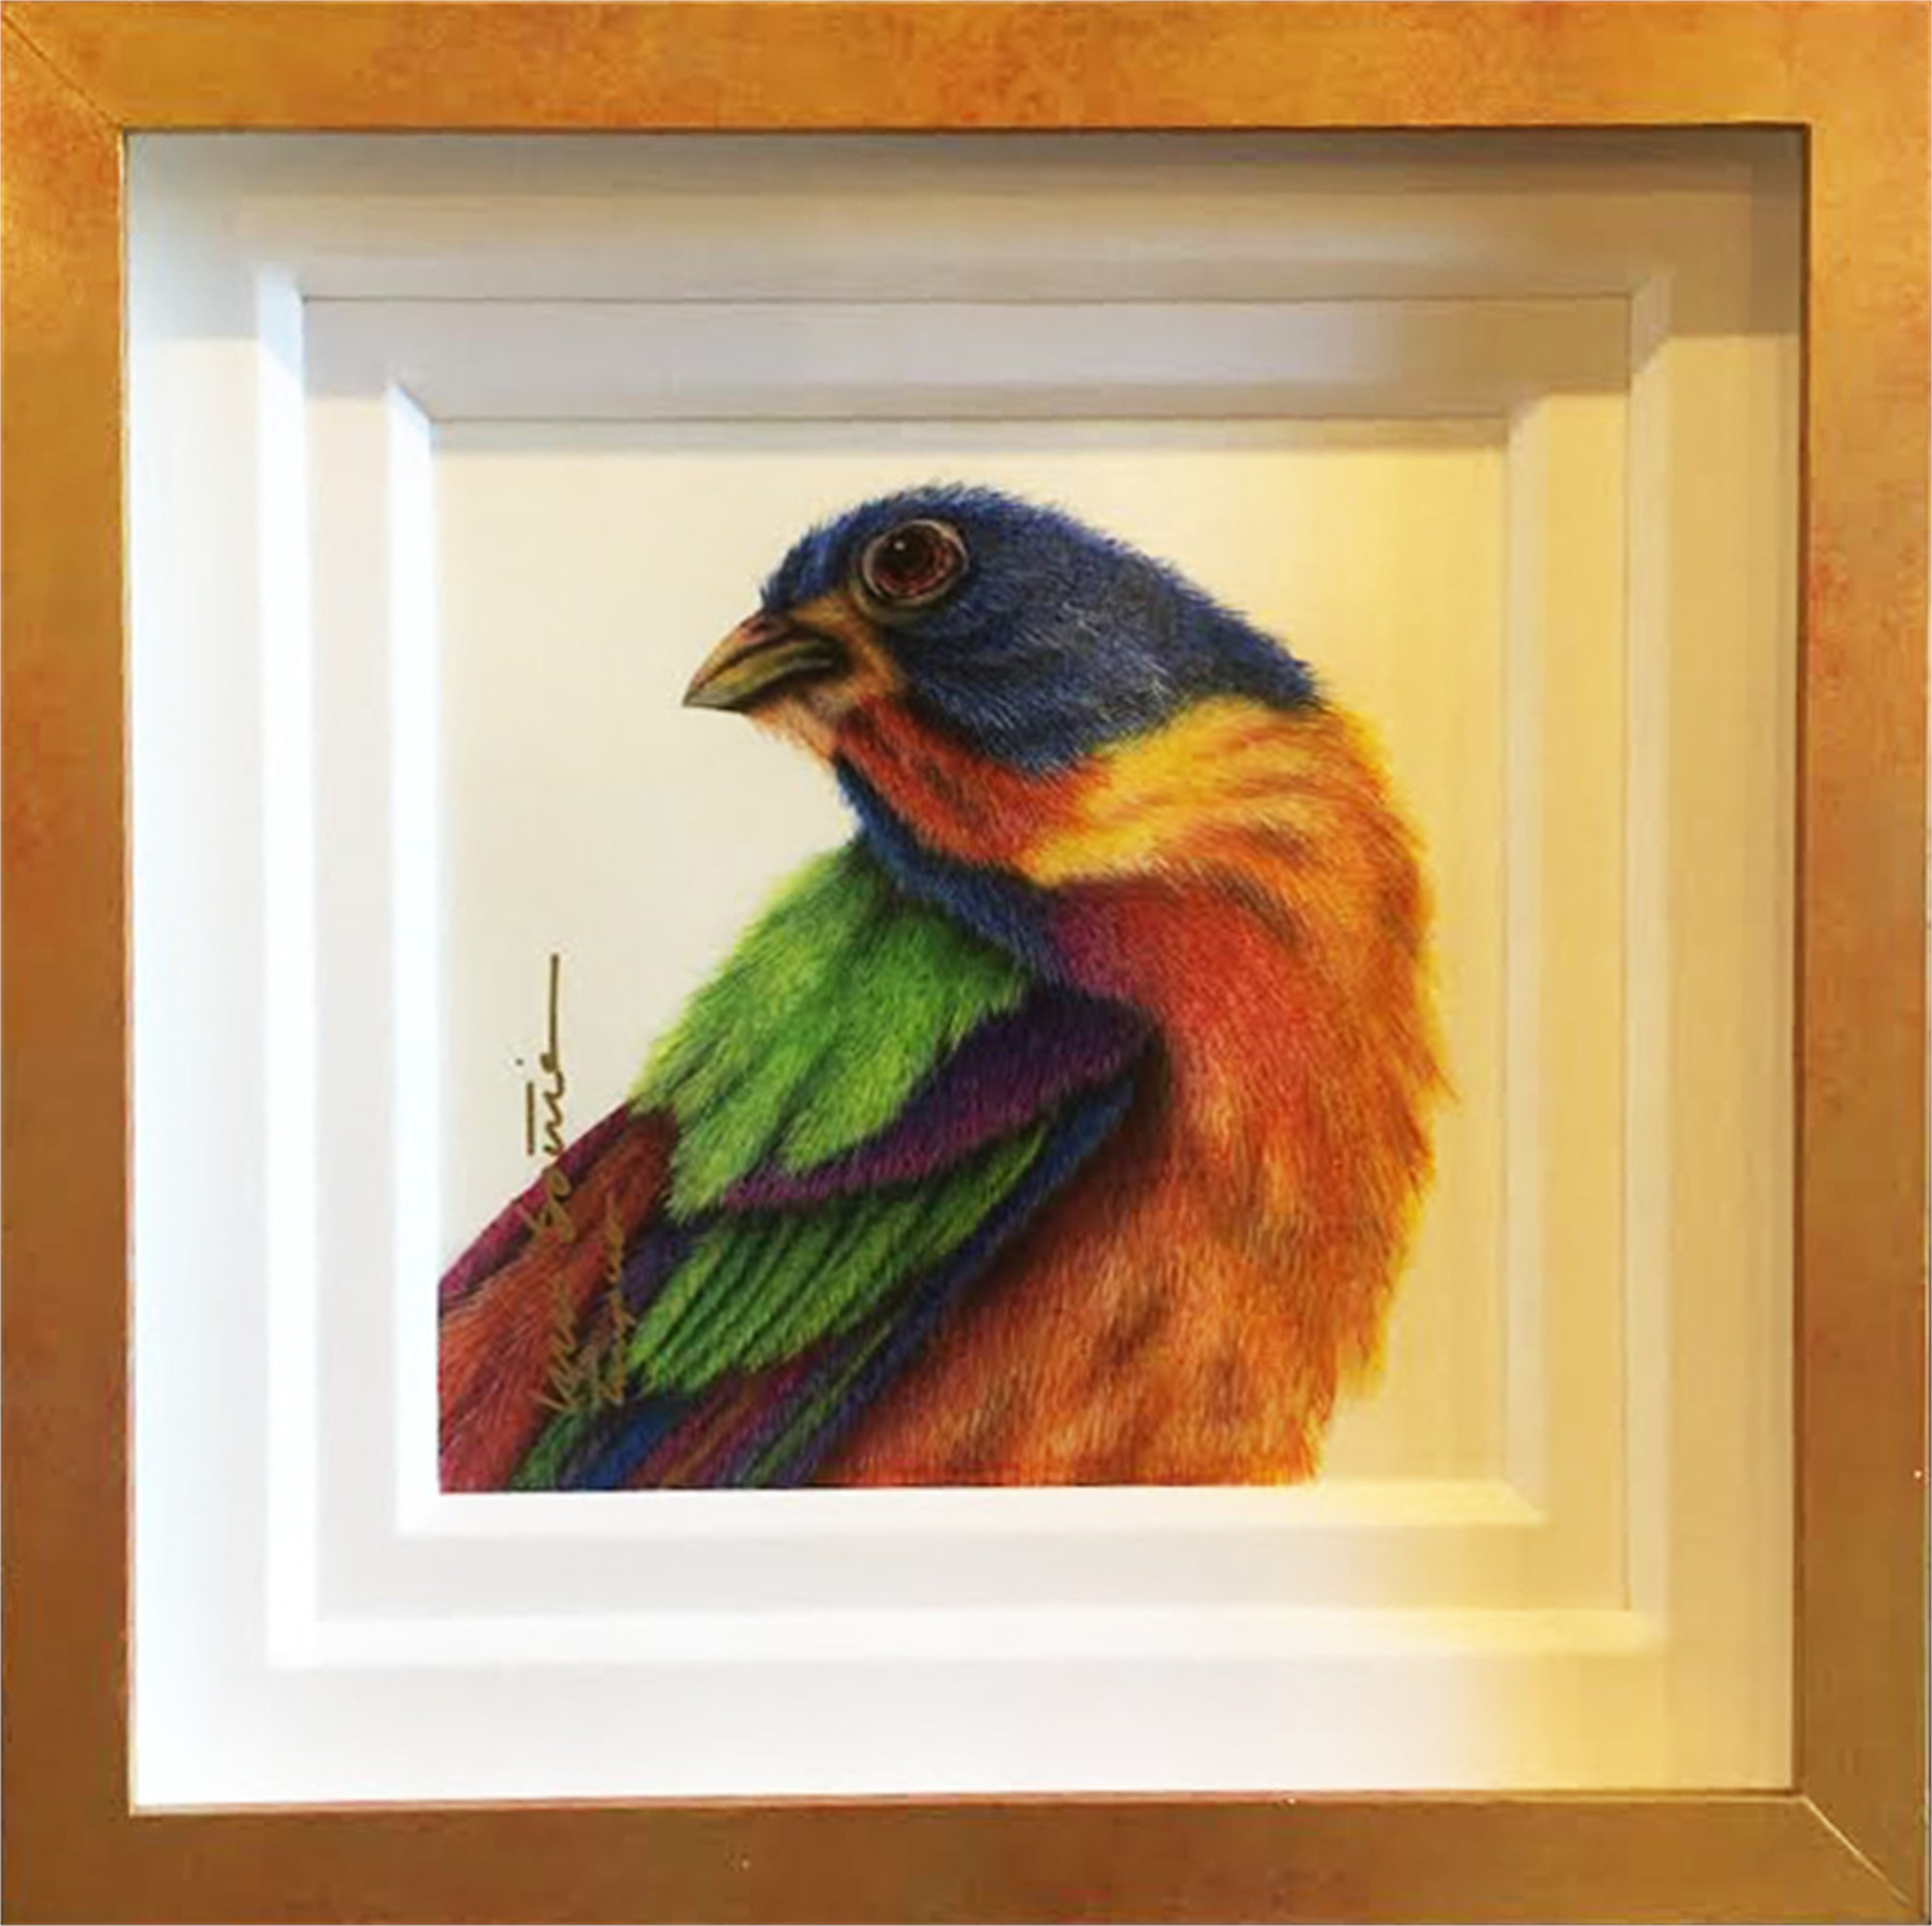 Painted Bunting, 11/23/16 by Luis Sottil